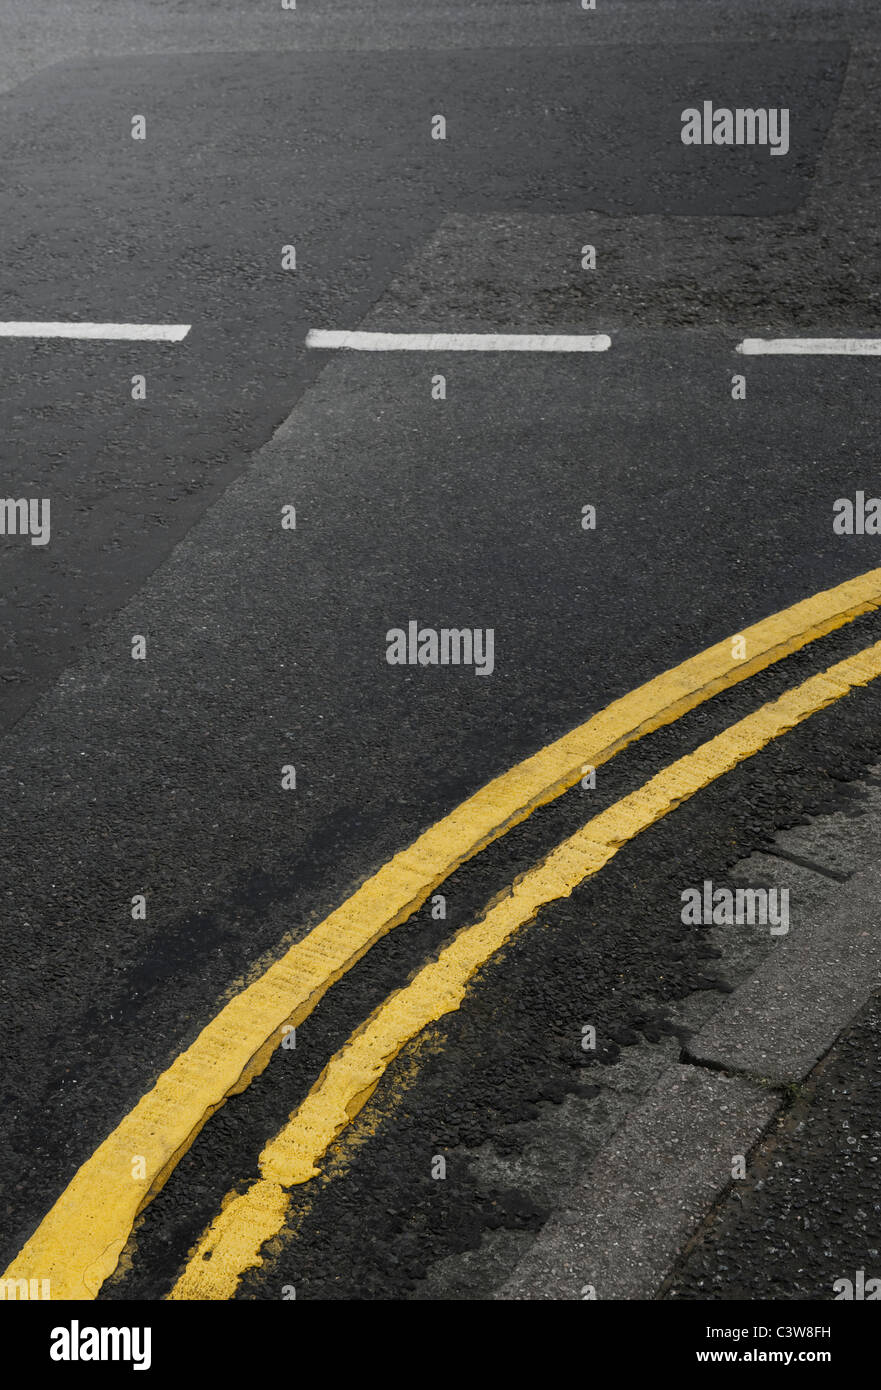 Curved Double Yellow Lines on the Road at a Junction - Stock Image